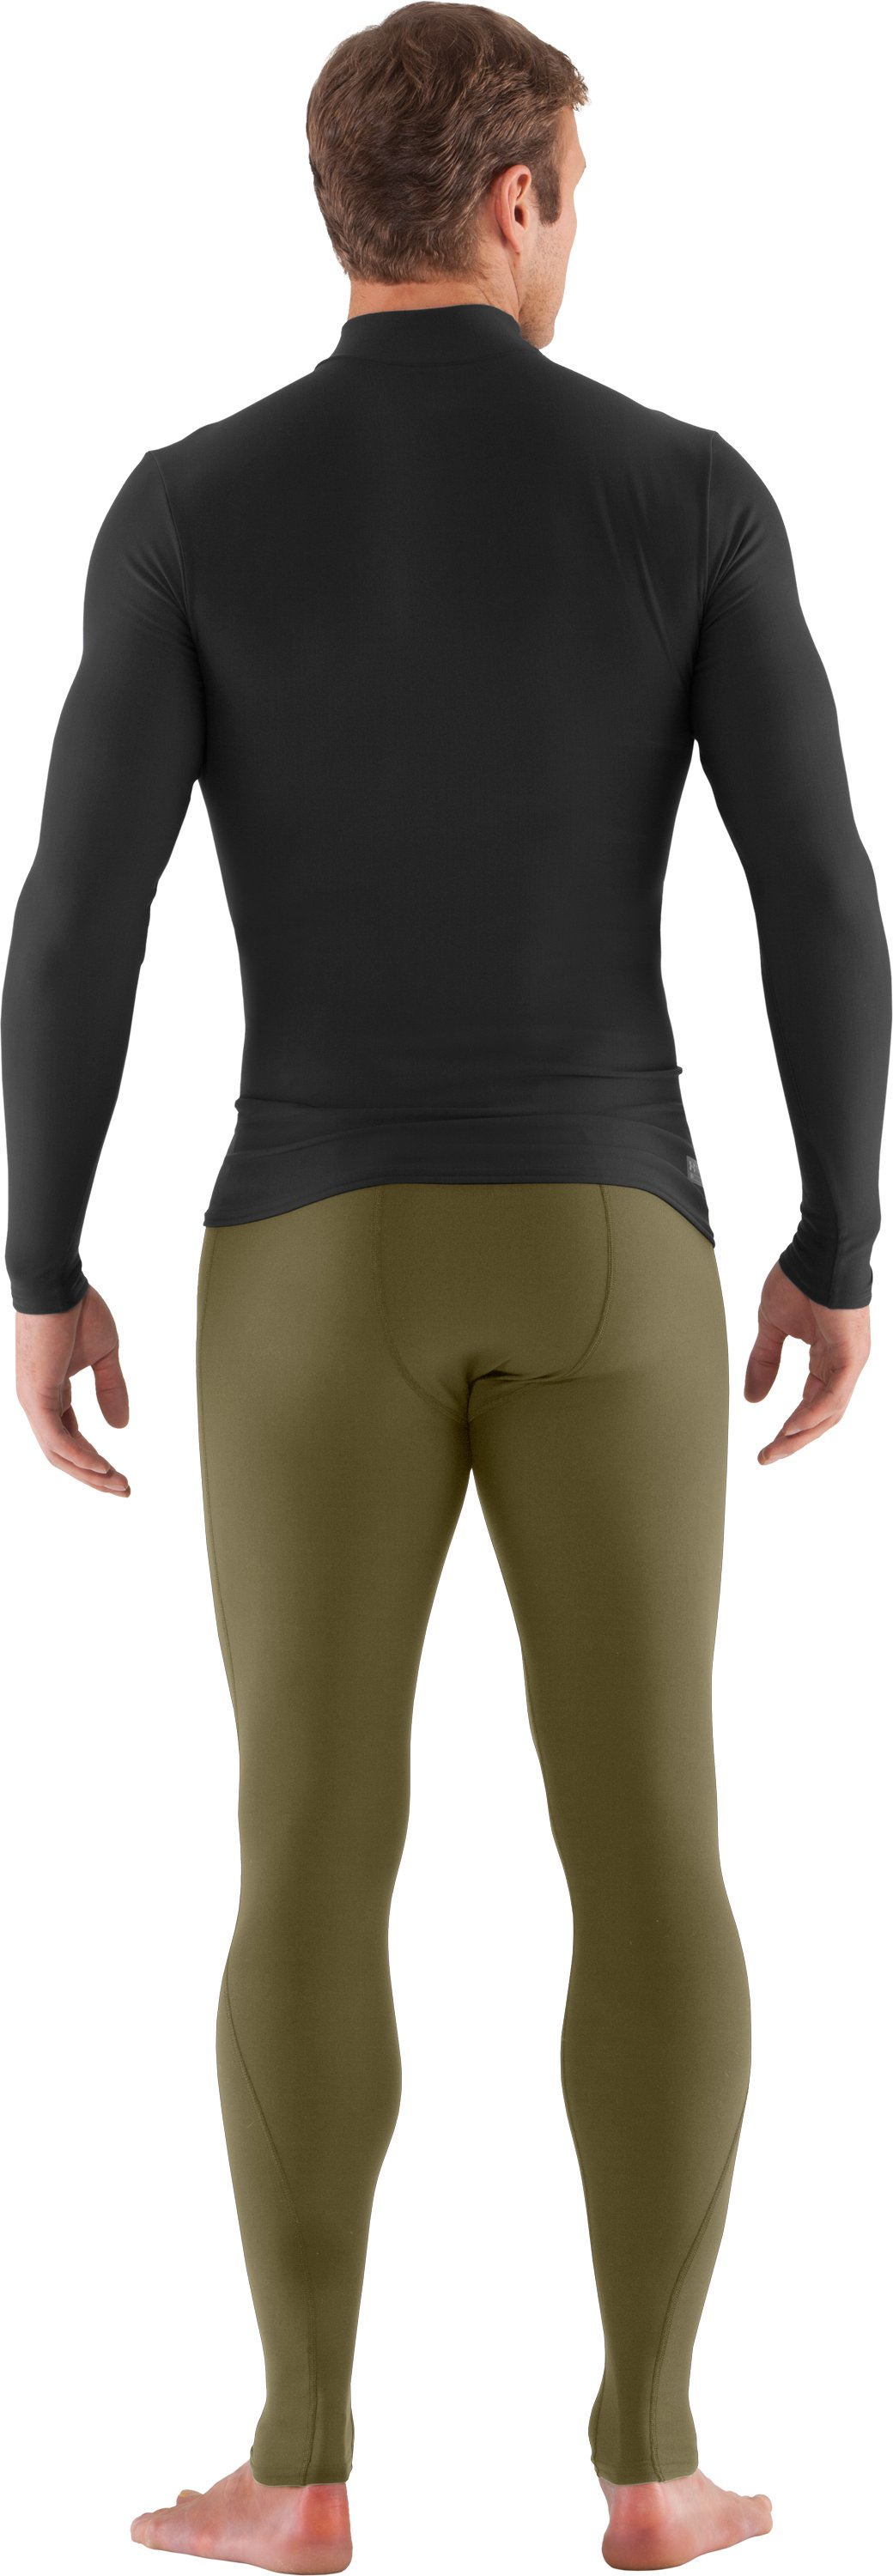 Men's Tactical ColdGear® Compression Leggings, Marine OD Green, Back